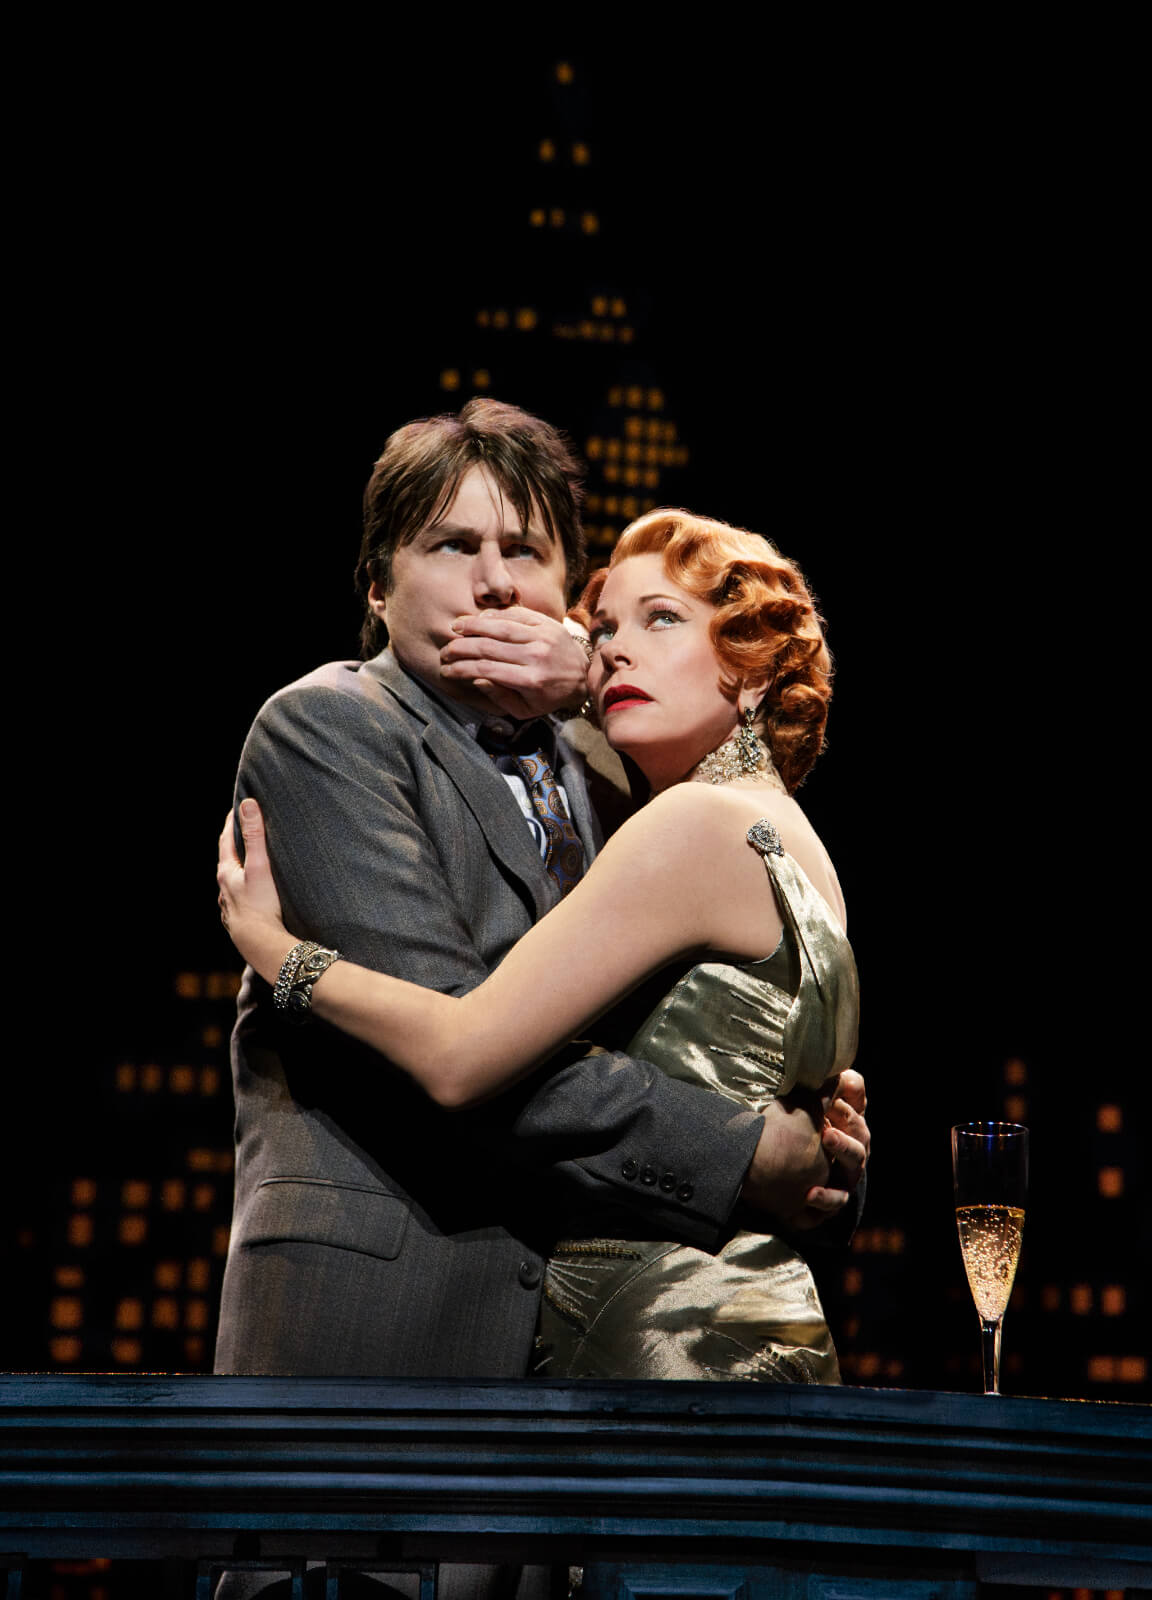 """Helen Sinclair (Marin Mazzie in a cocktail dress) hugs and covers the mouth of David Shayne (Zach Braff) with a cityscape in the background. Saying the iconic line """"Don't Speak""""."""